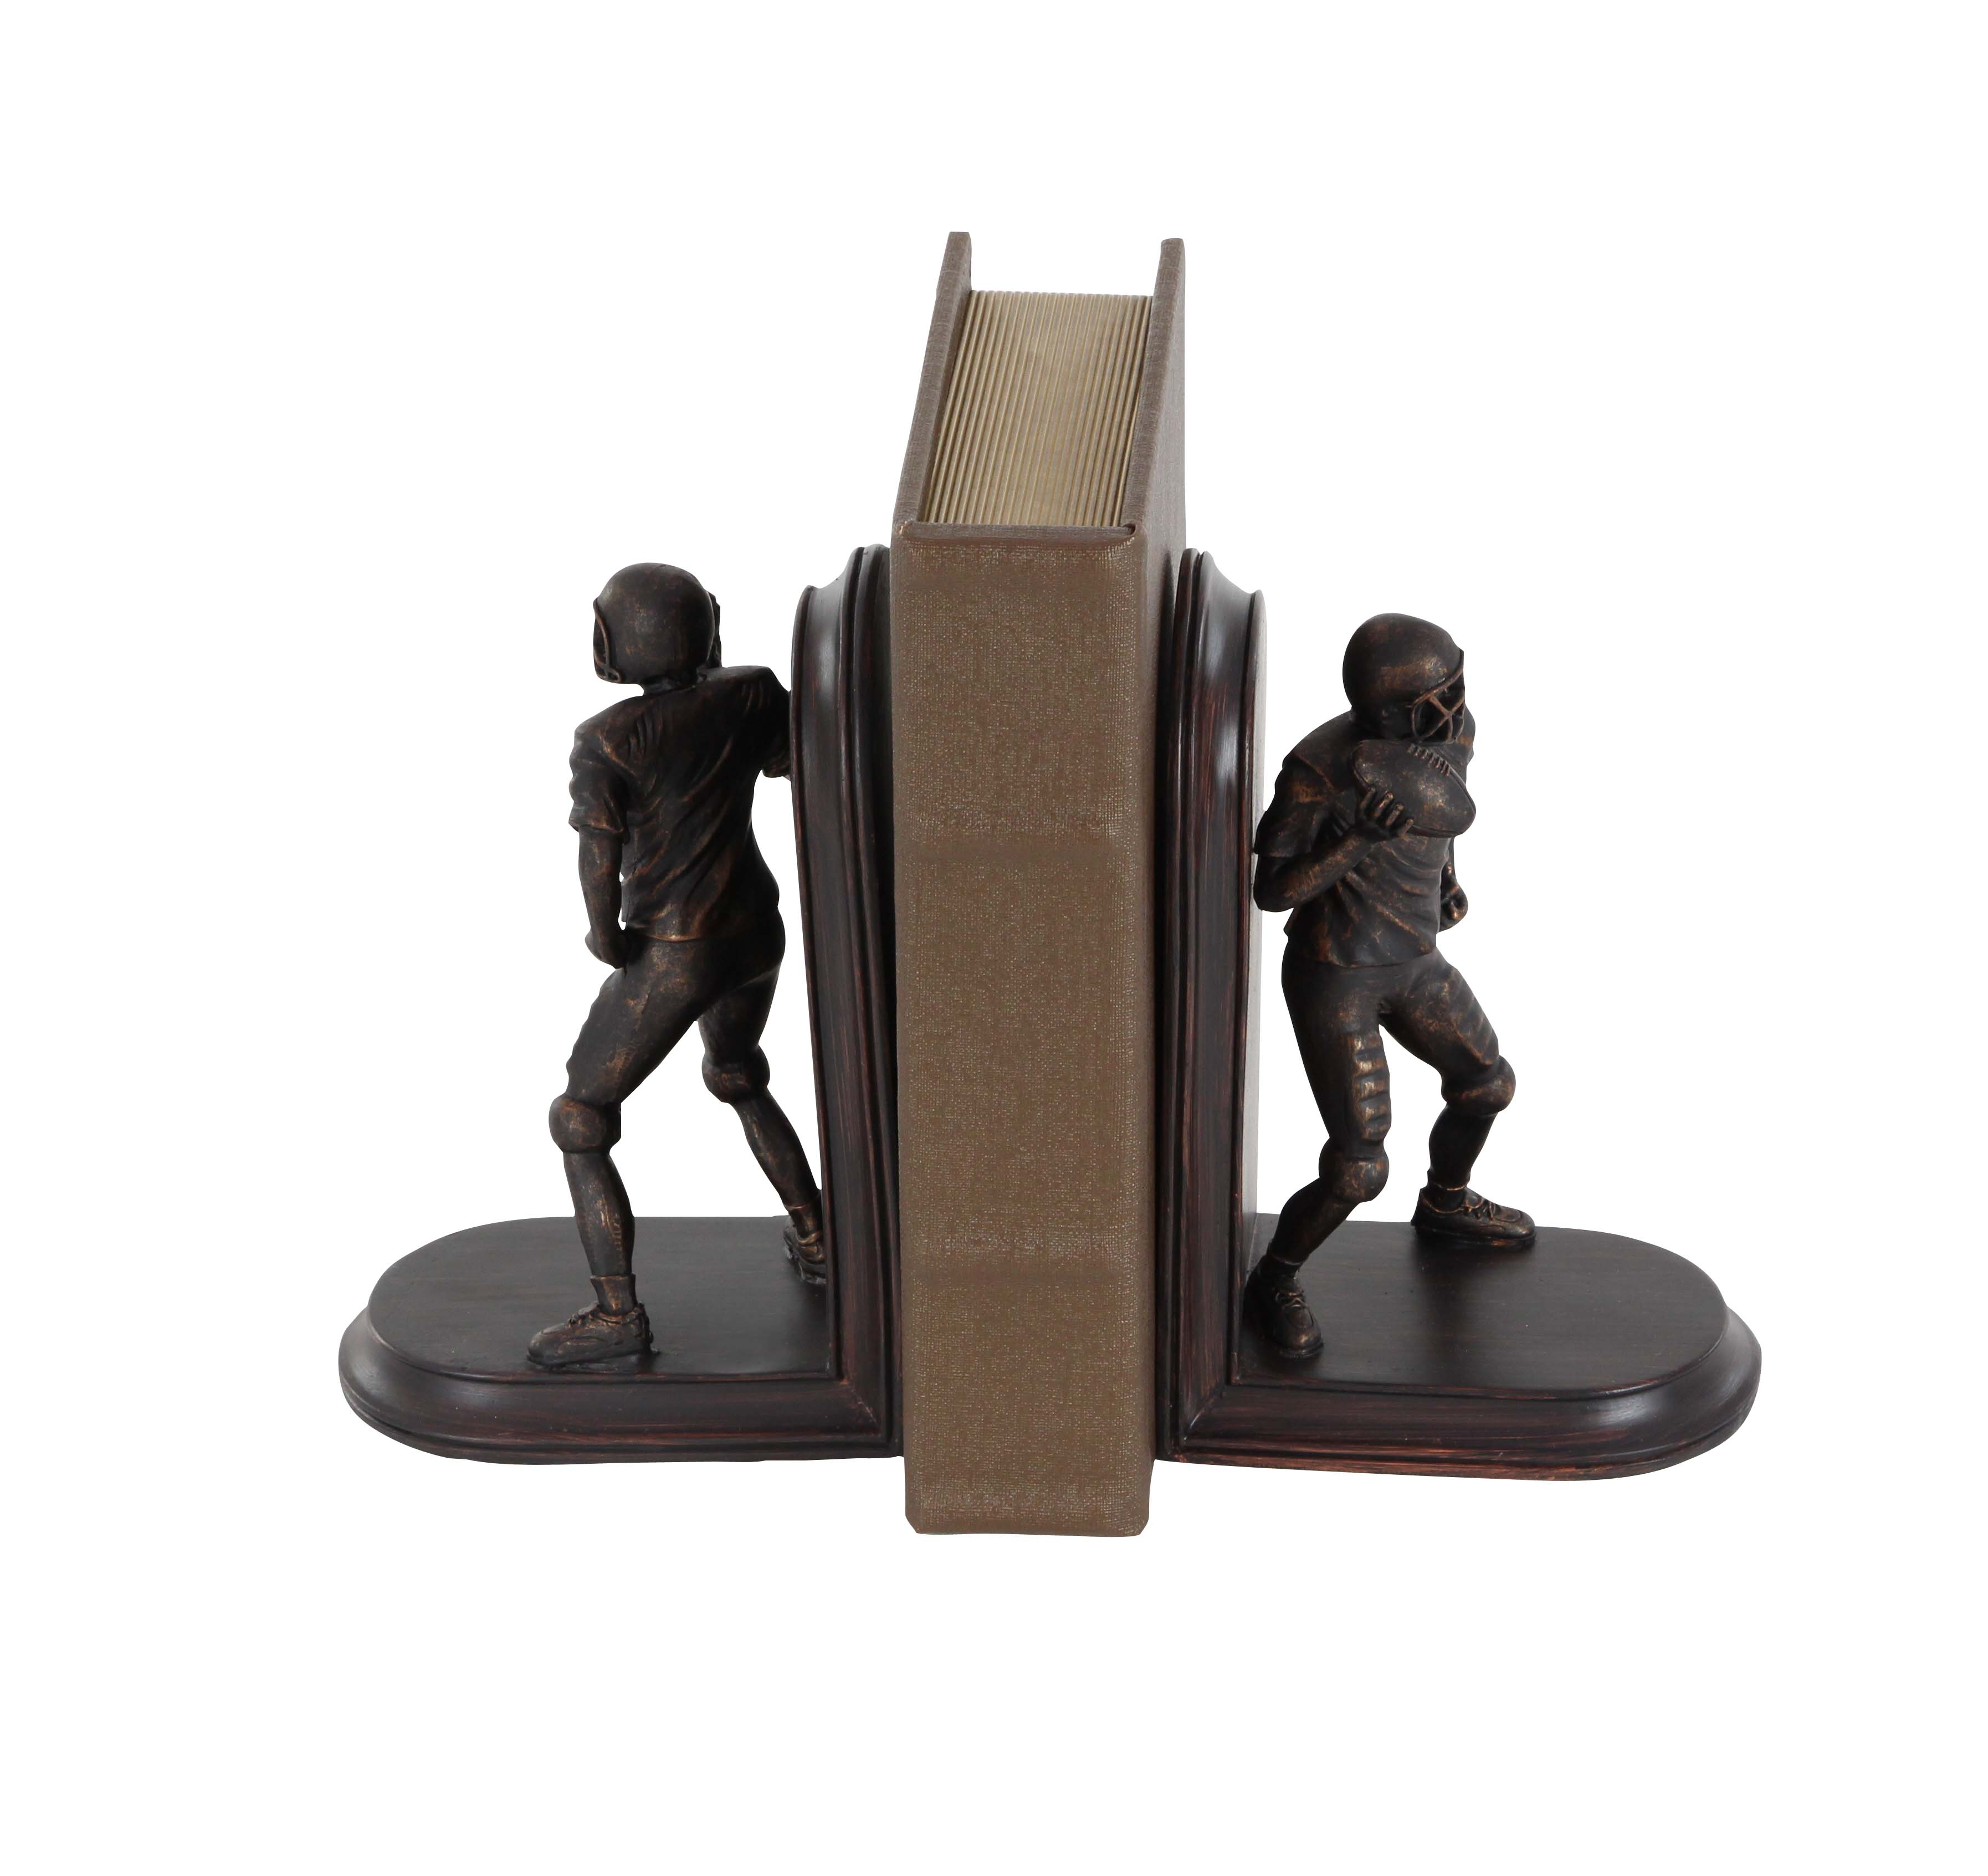 Decmode Pair of Eclectic 8 X 5 Inch Polystone Football Player Bookends, Brown